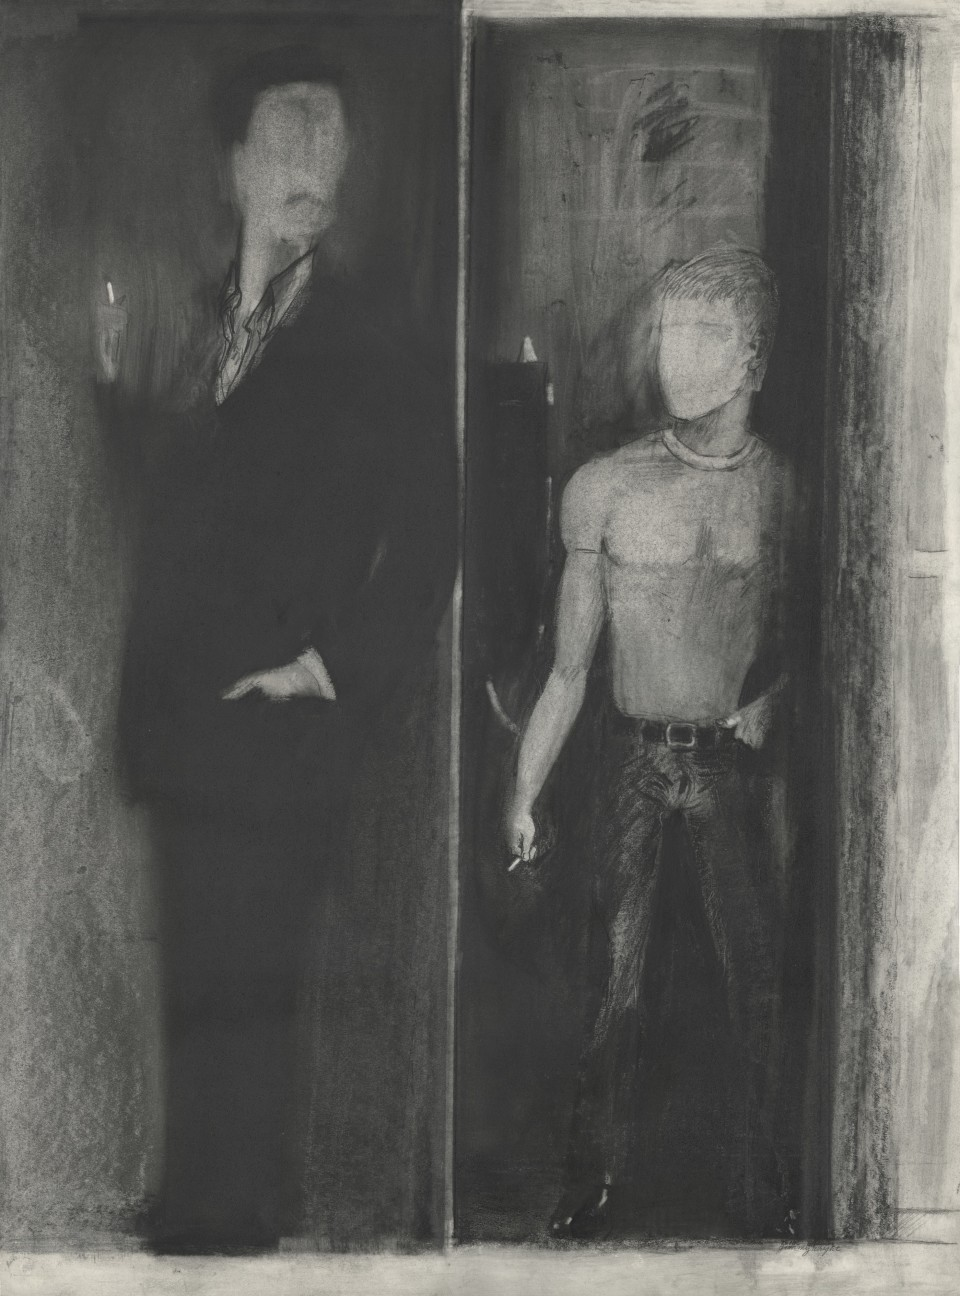 Image: Jimmy Wright  Hustler, 1975  graphite on paper  30 x 22 inches (76.2 x 55.9 cm)